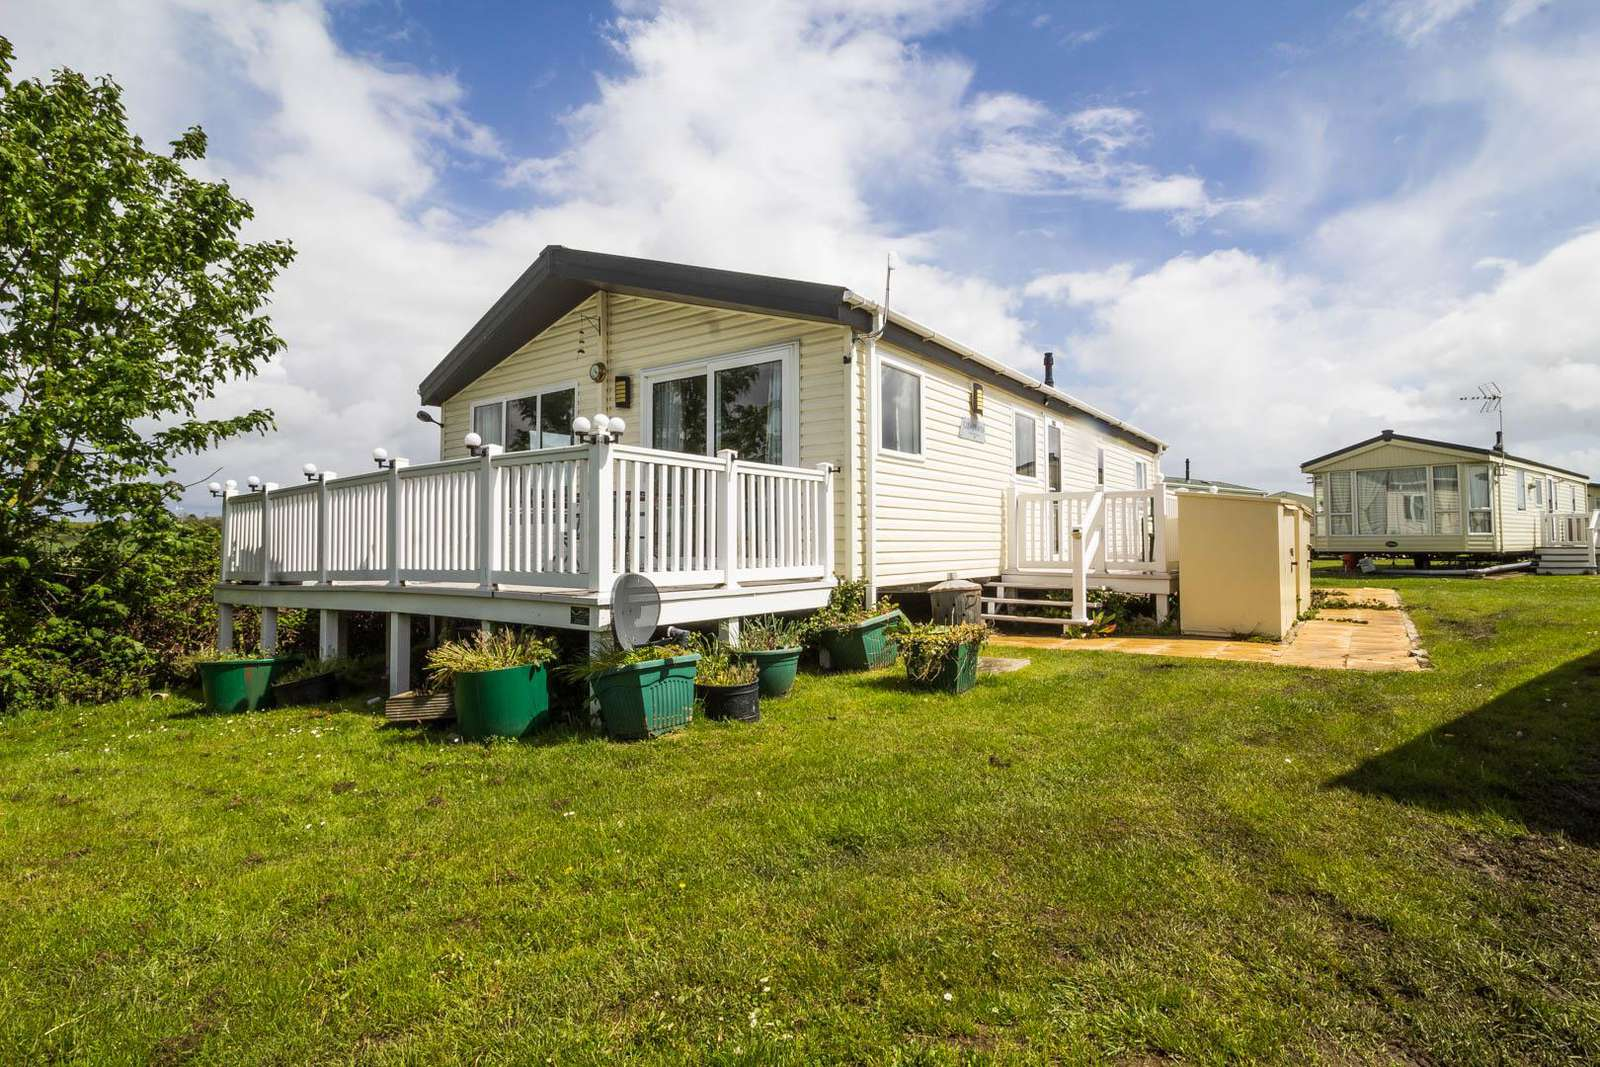 28019FV – Field View area, 2 bed, 7 berth lodge with decking. Platinum-Deluxe rated. - property